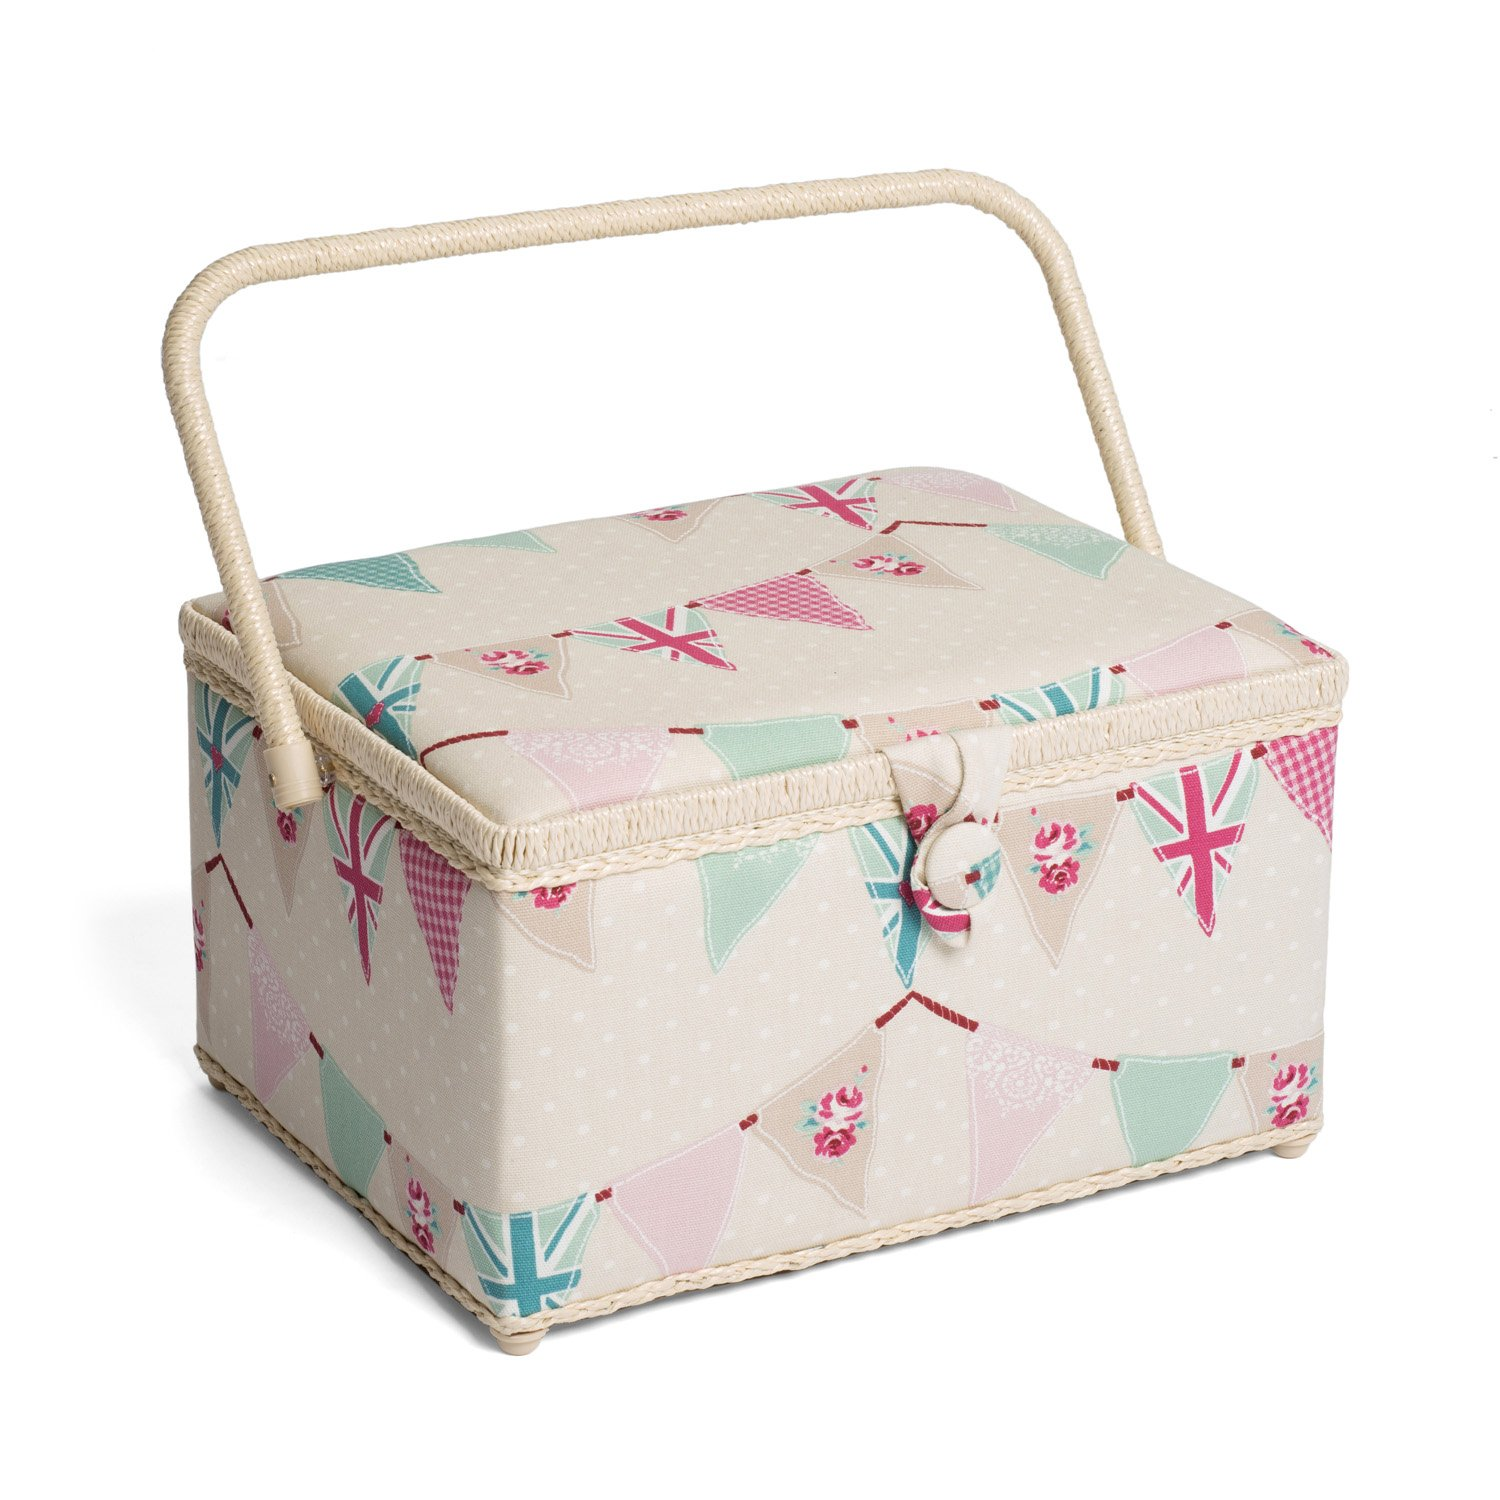 Hobby Gift HGL/234 | Bunting Print Large Sewing Basket | 24x31½x19½cm